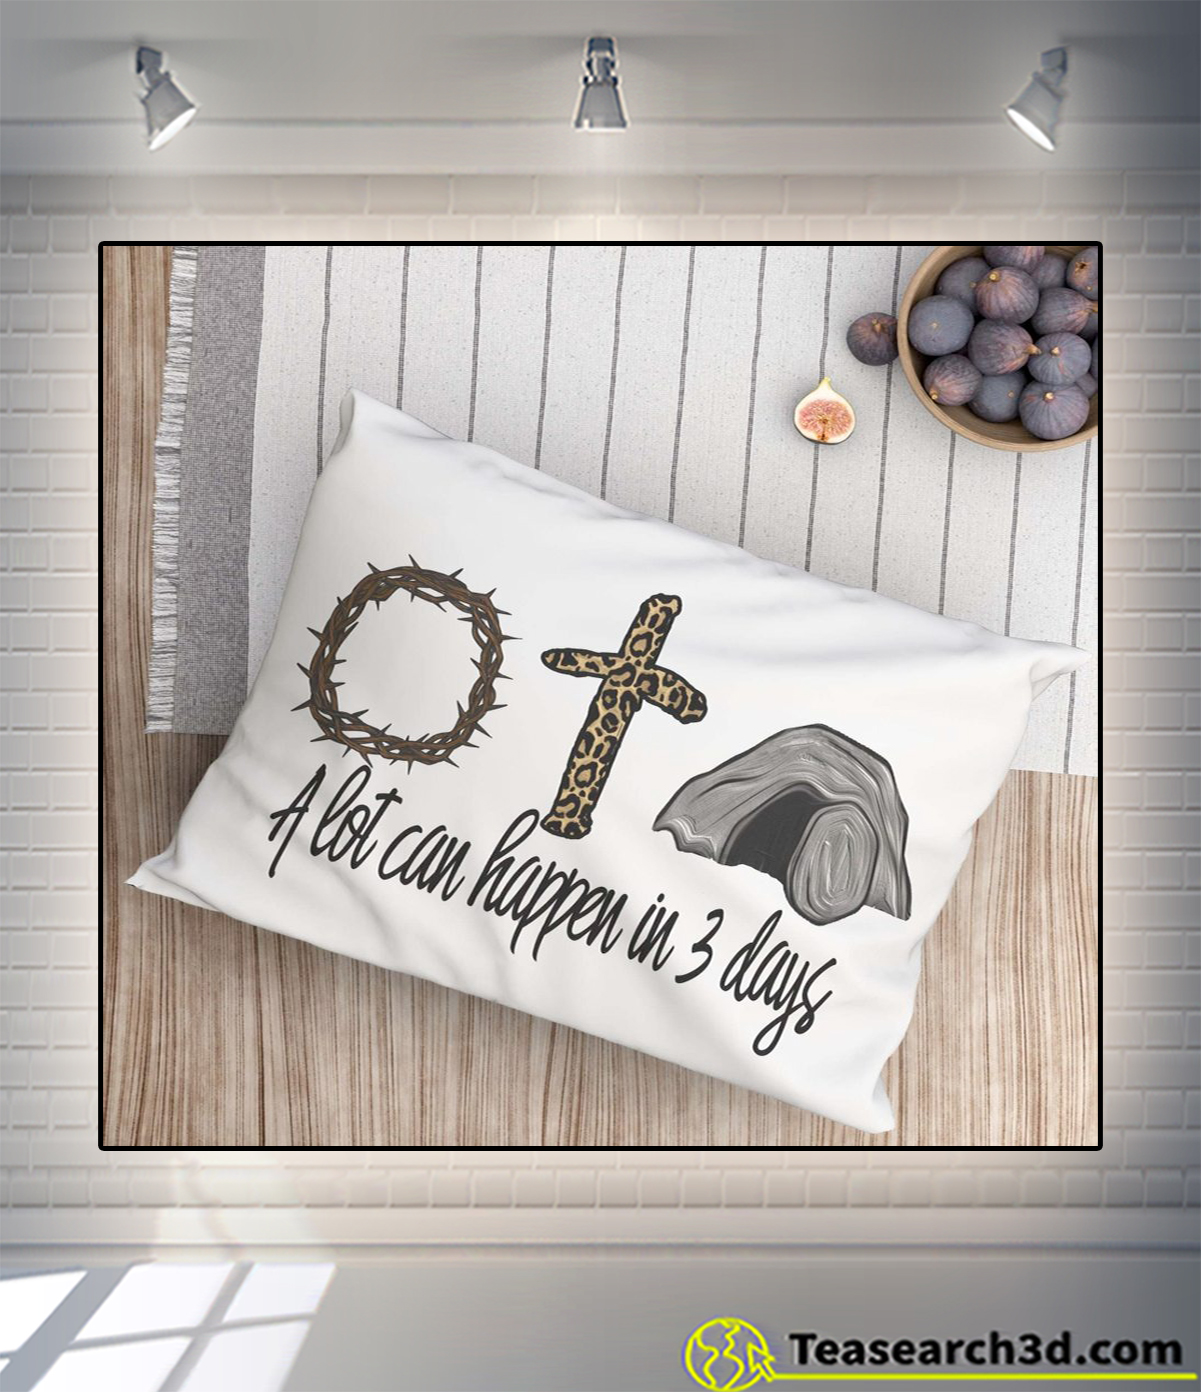 A lot can happen in 3 days jesus easter pillow white